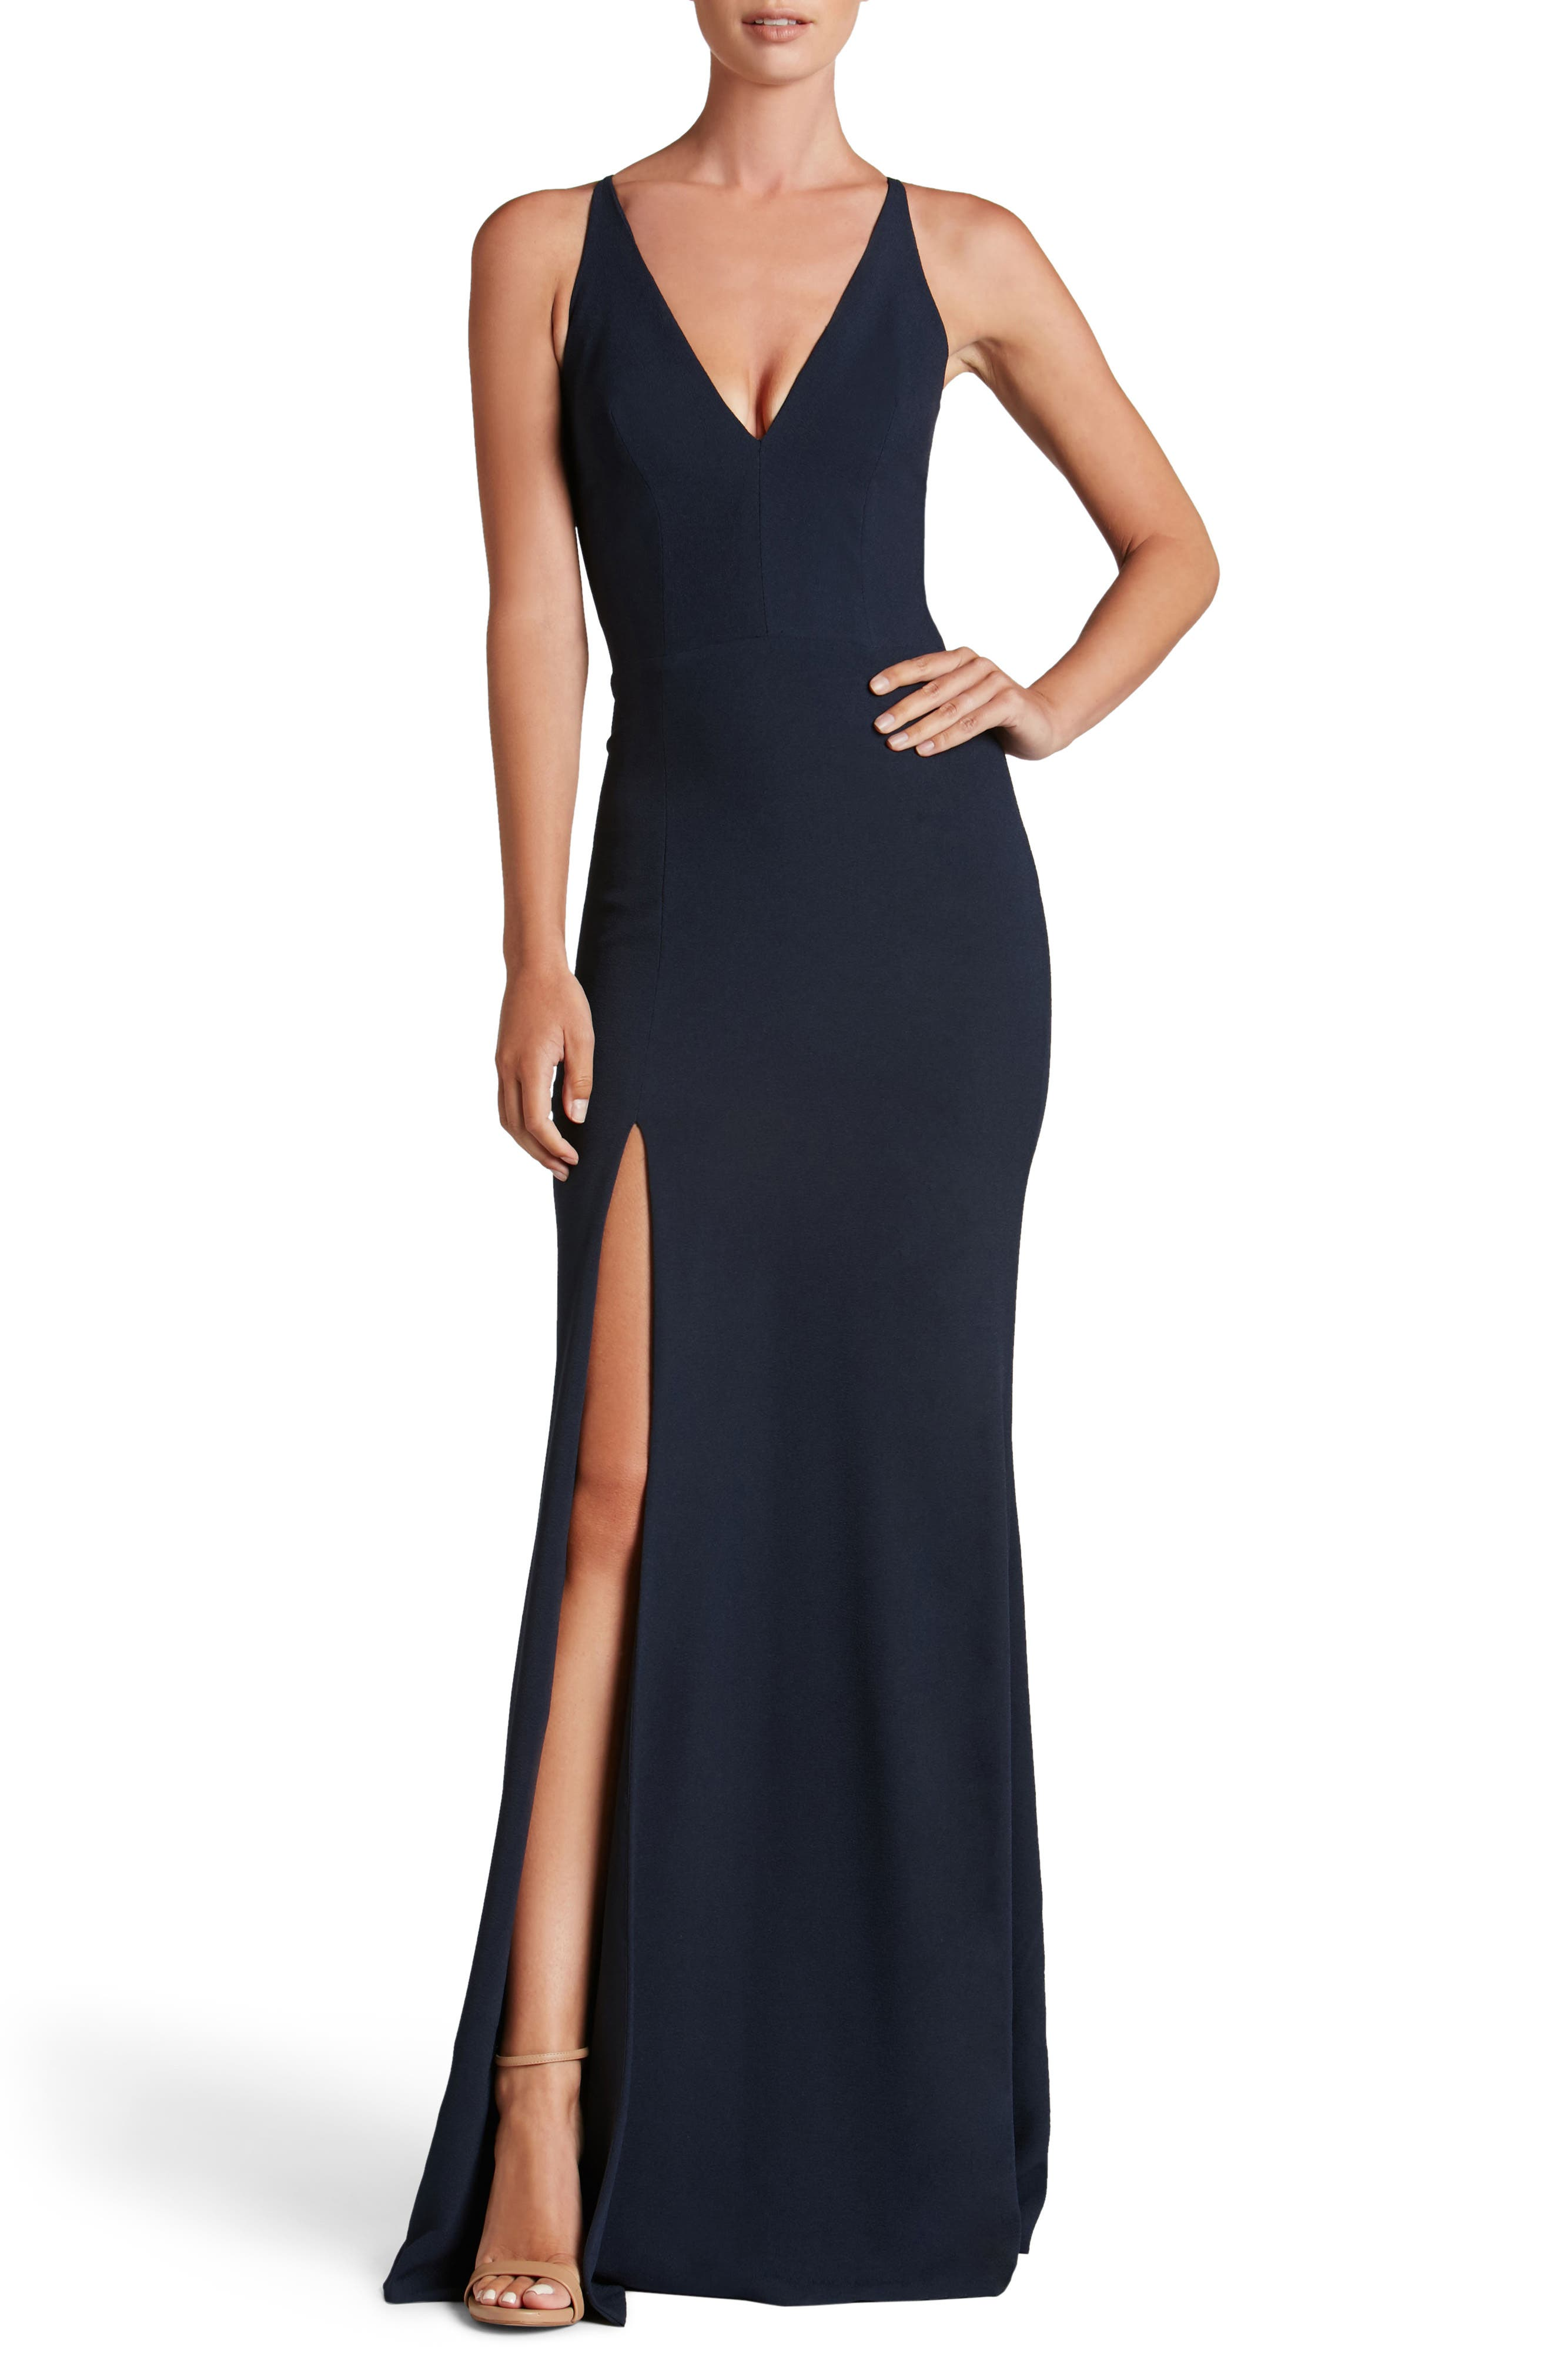 Bridesmaid wedding party dresses nordstrom ombrellifo Images